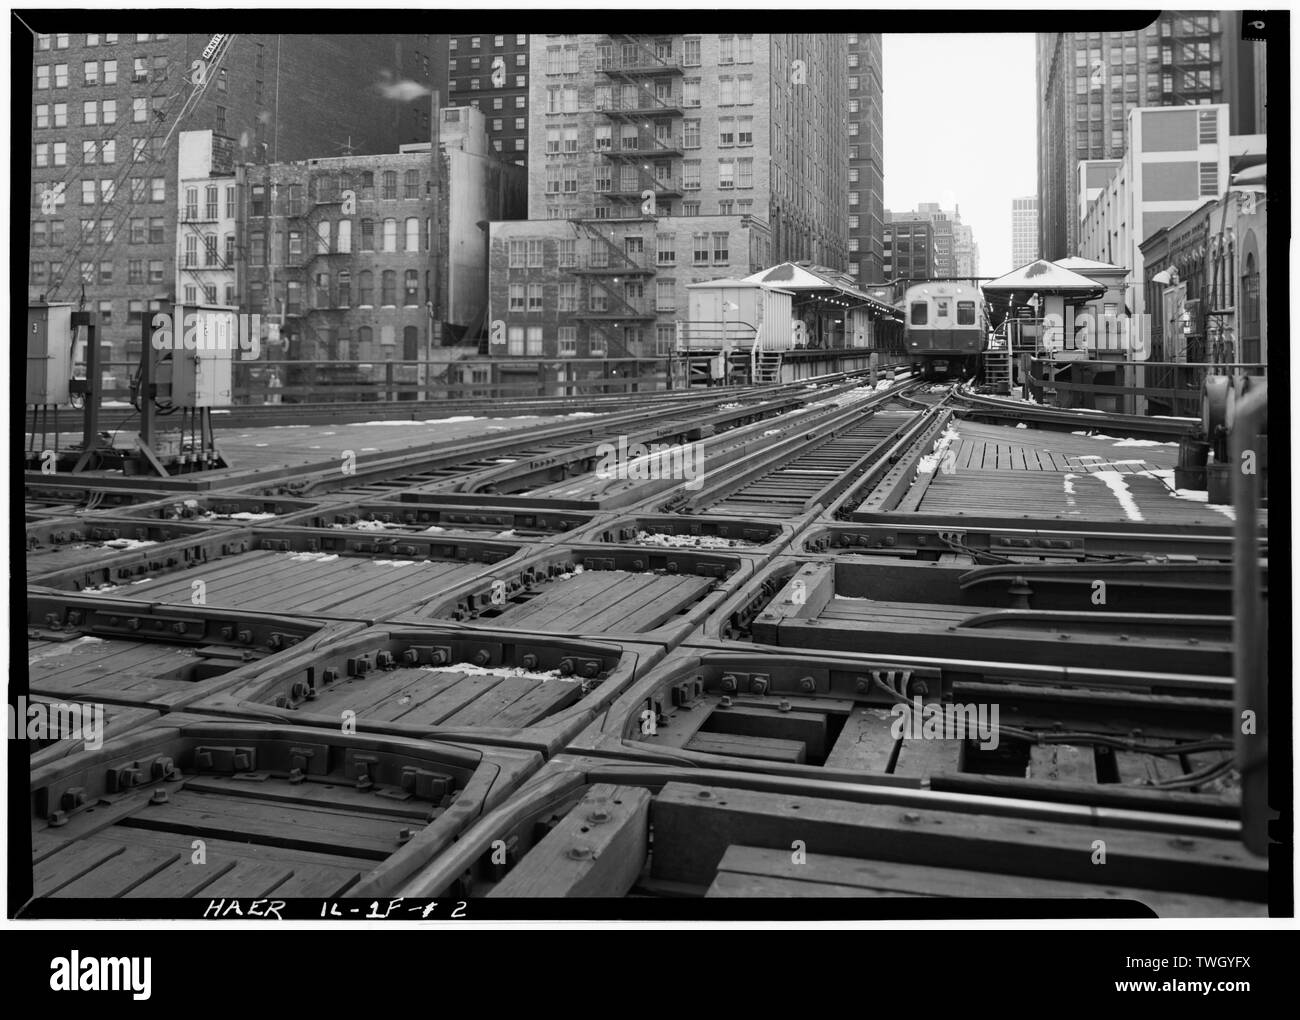 Randolf St. Station seen from the crossing of Wells and Lake Sts. - Union Elevated Railroad, Randolph-Wells Street Station, Randall and Wells Street, Chicago, Cook County, IL - Stock Image